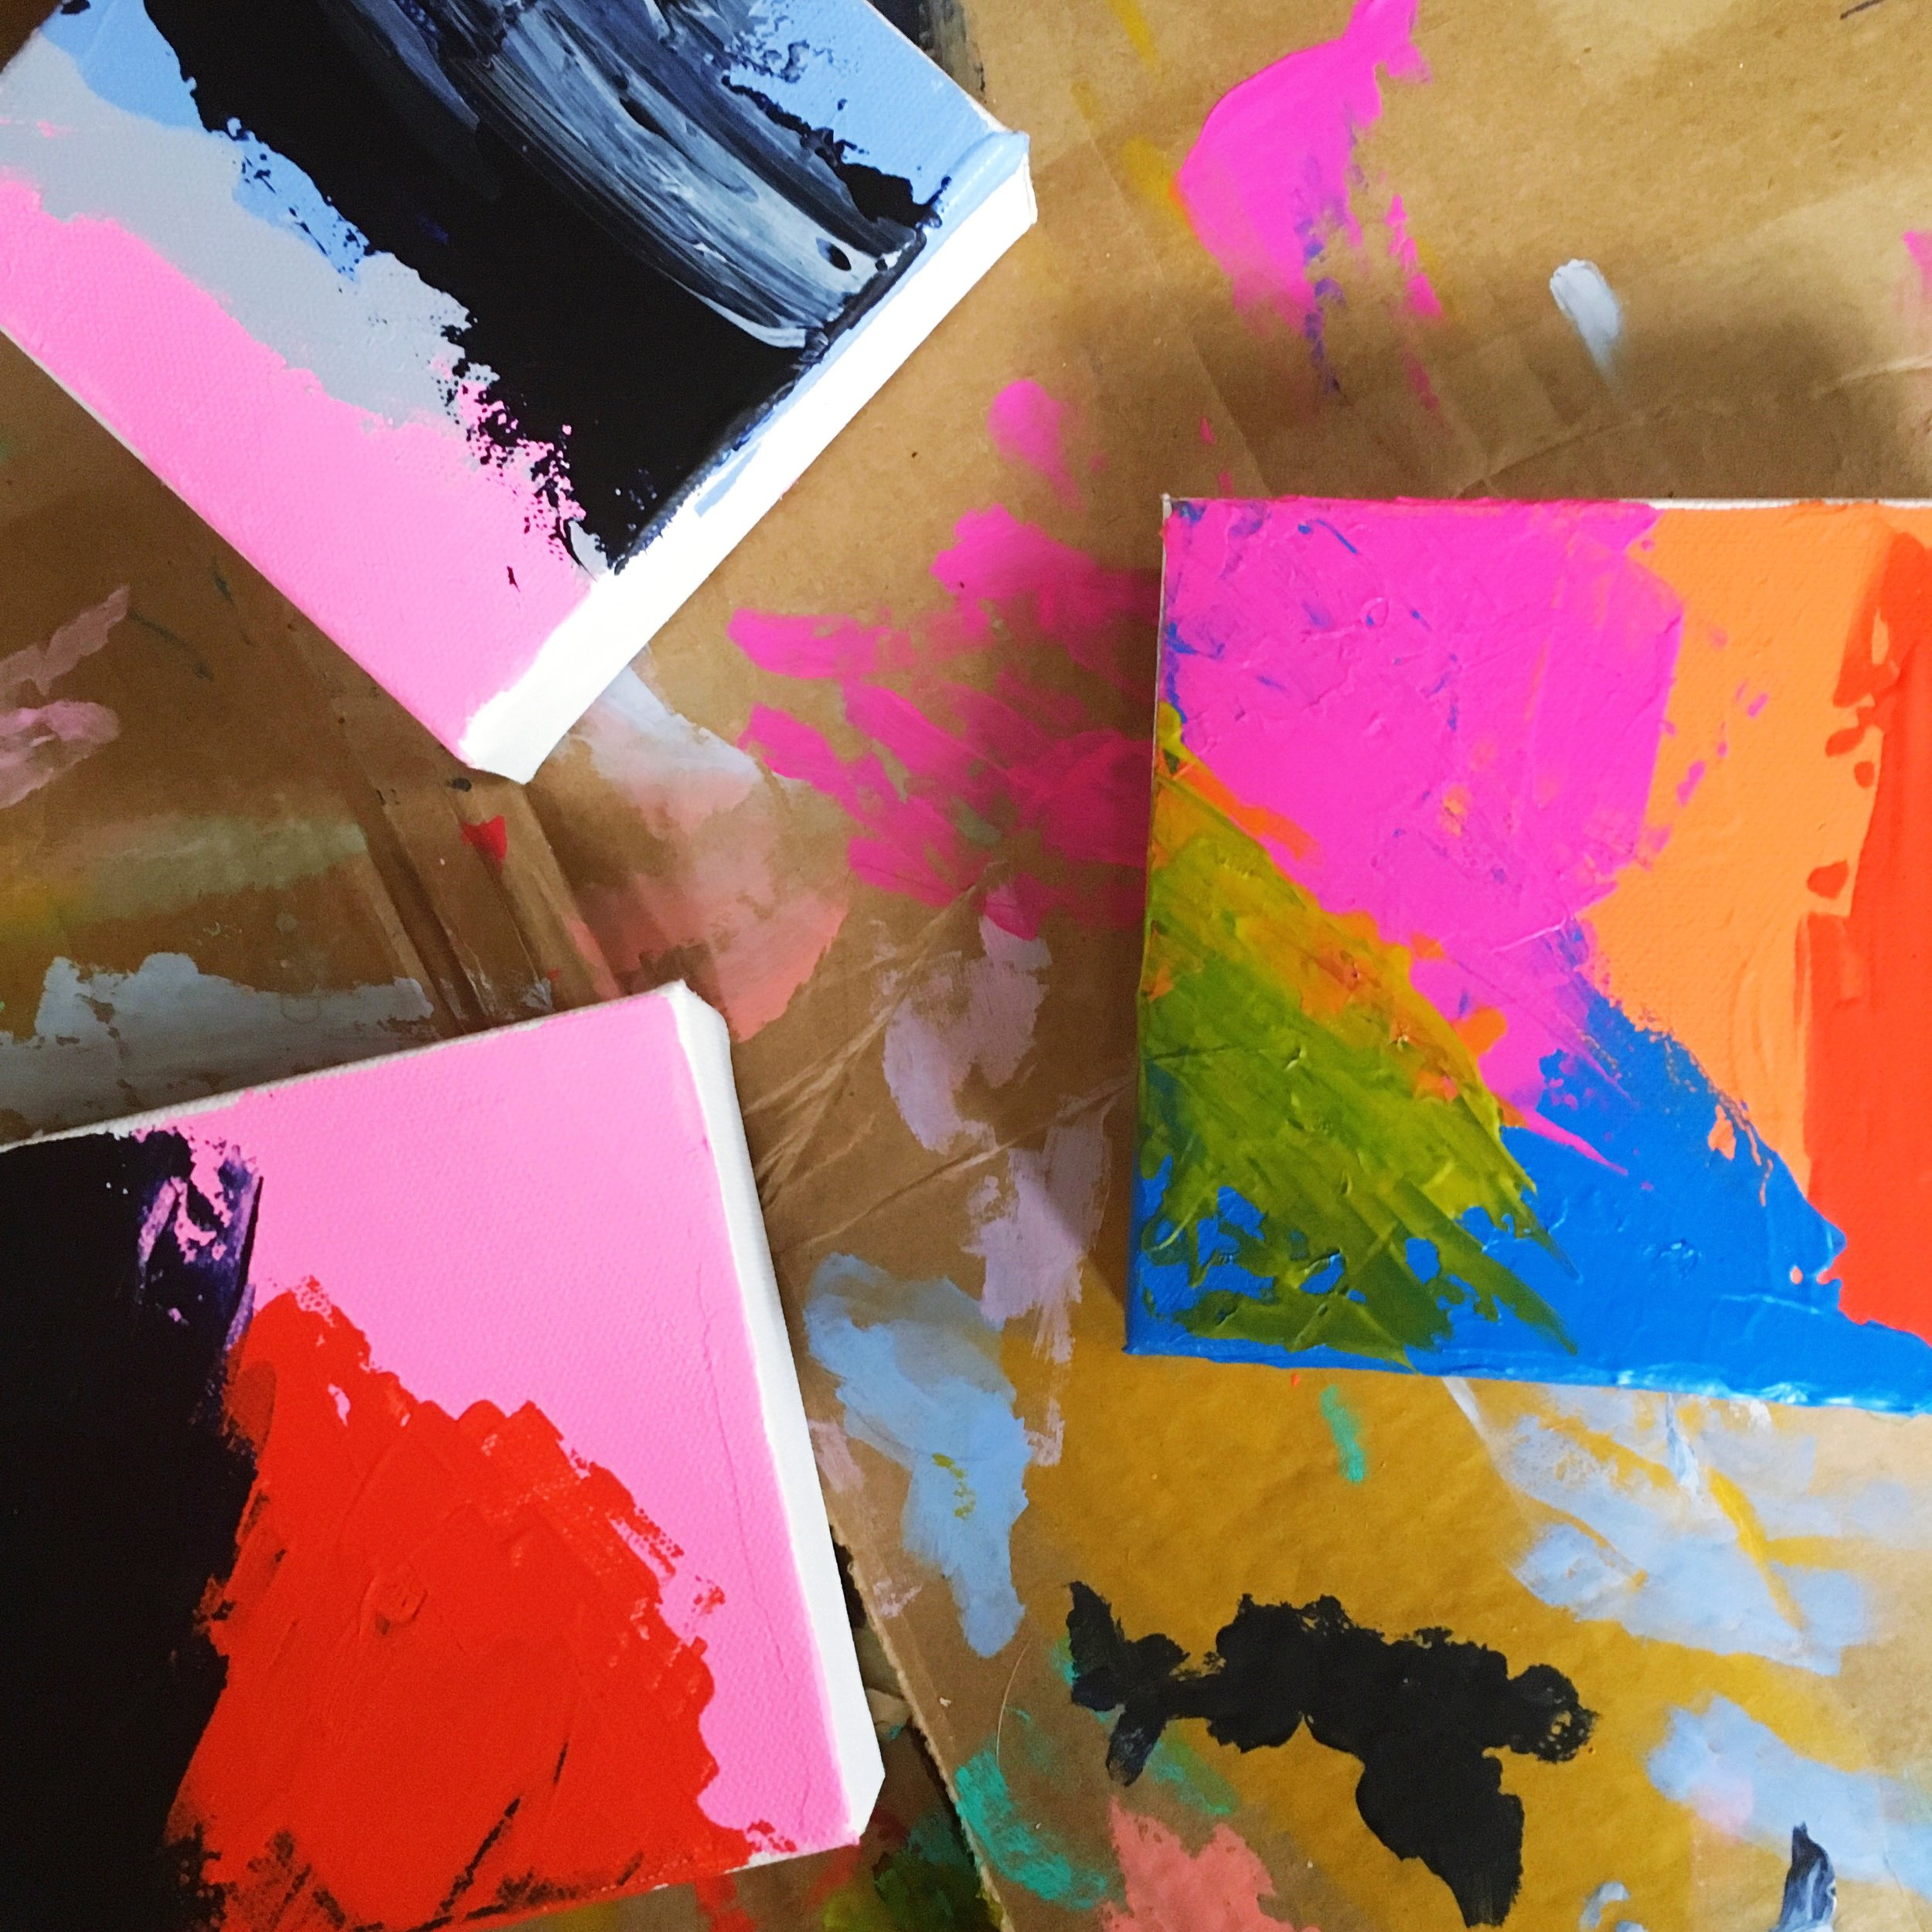 abstract 5x5 painting process